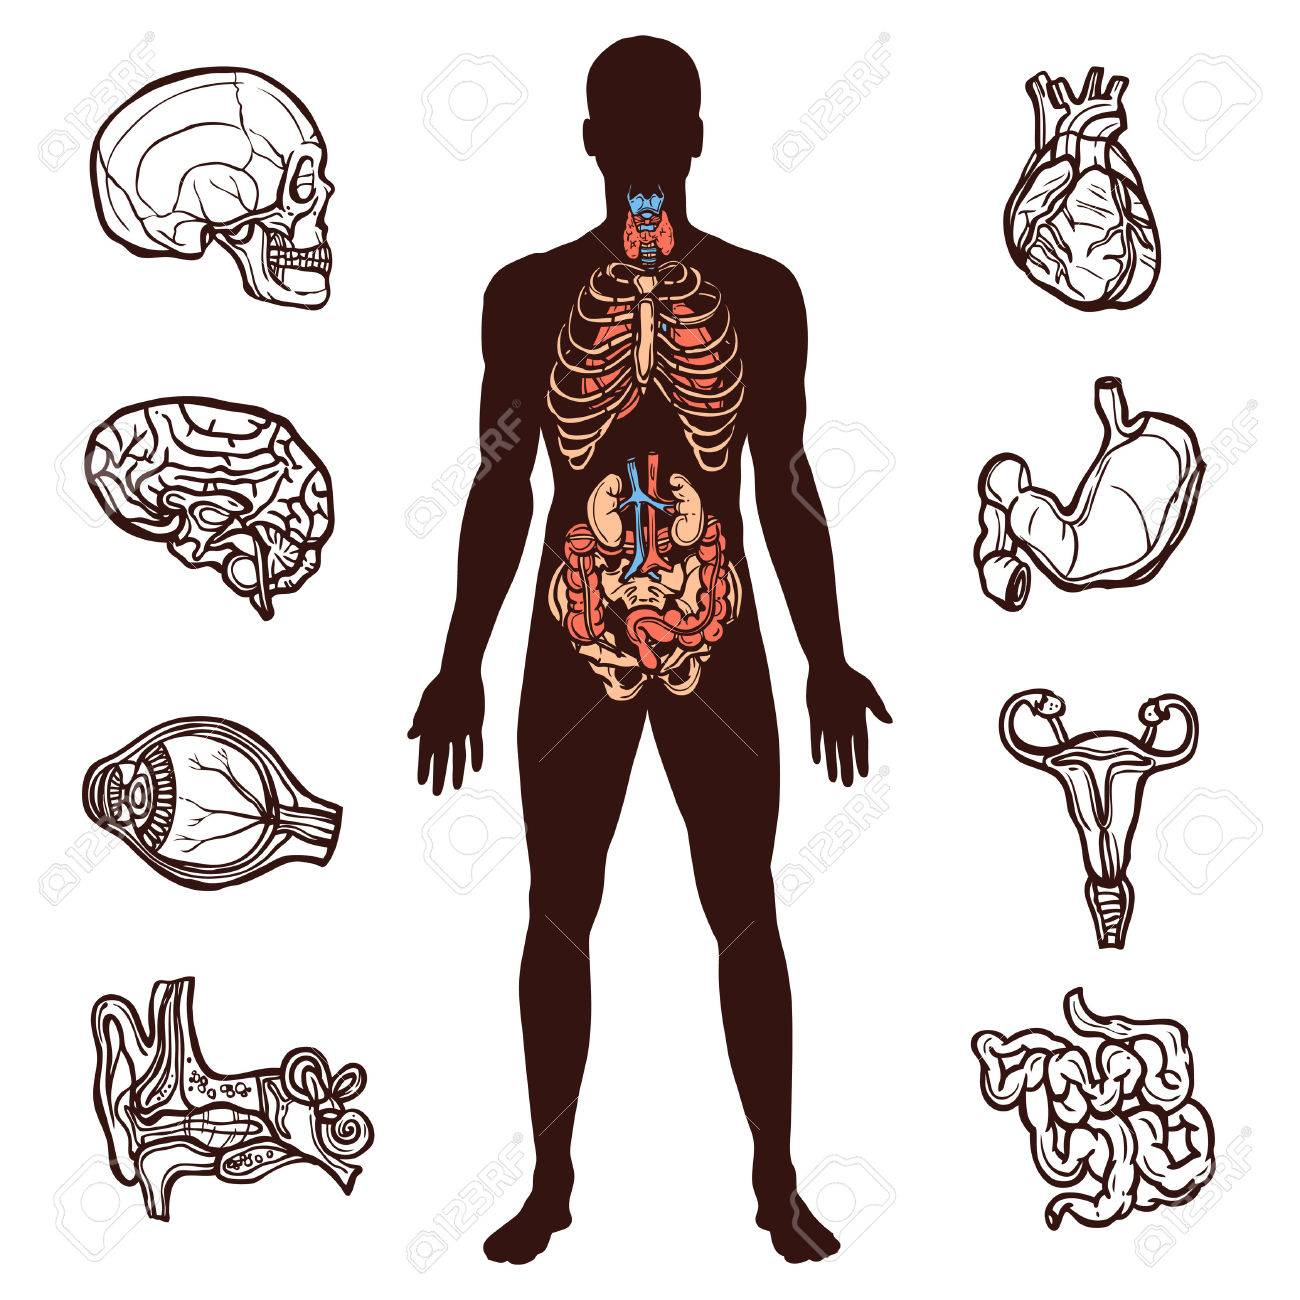 Anatomy Set With Sketch Internal Organs And Human Figure Isolated